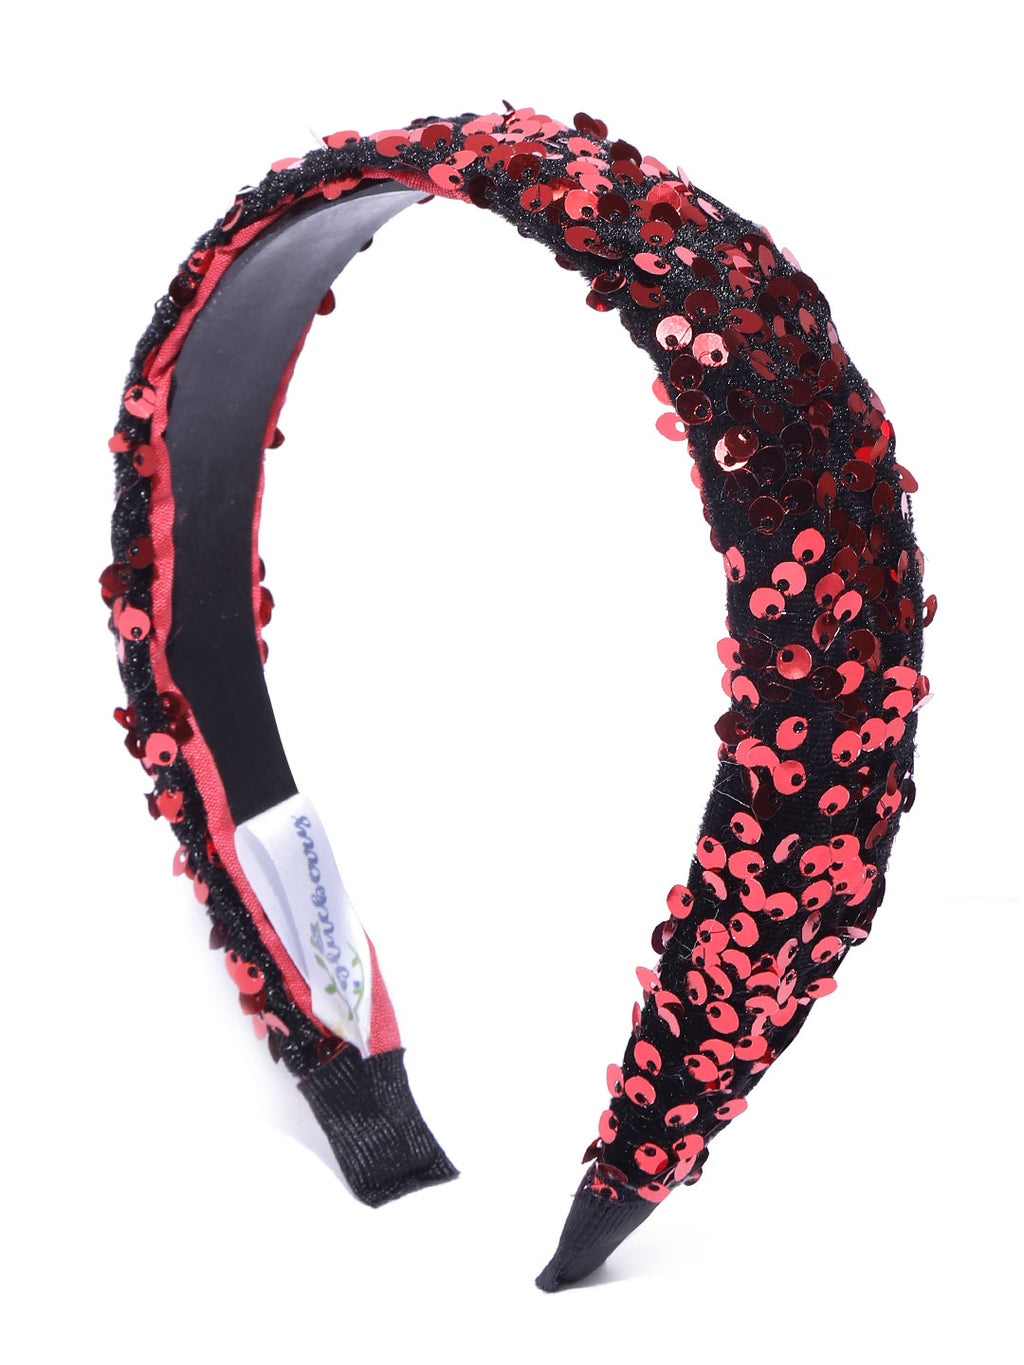 Blueberry red sequence embellished black hairband